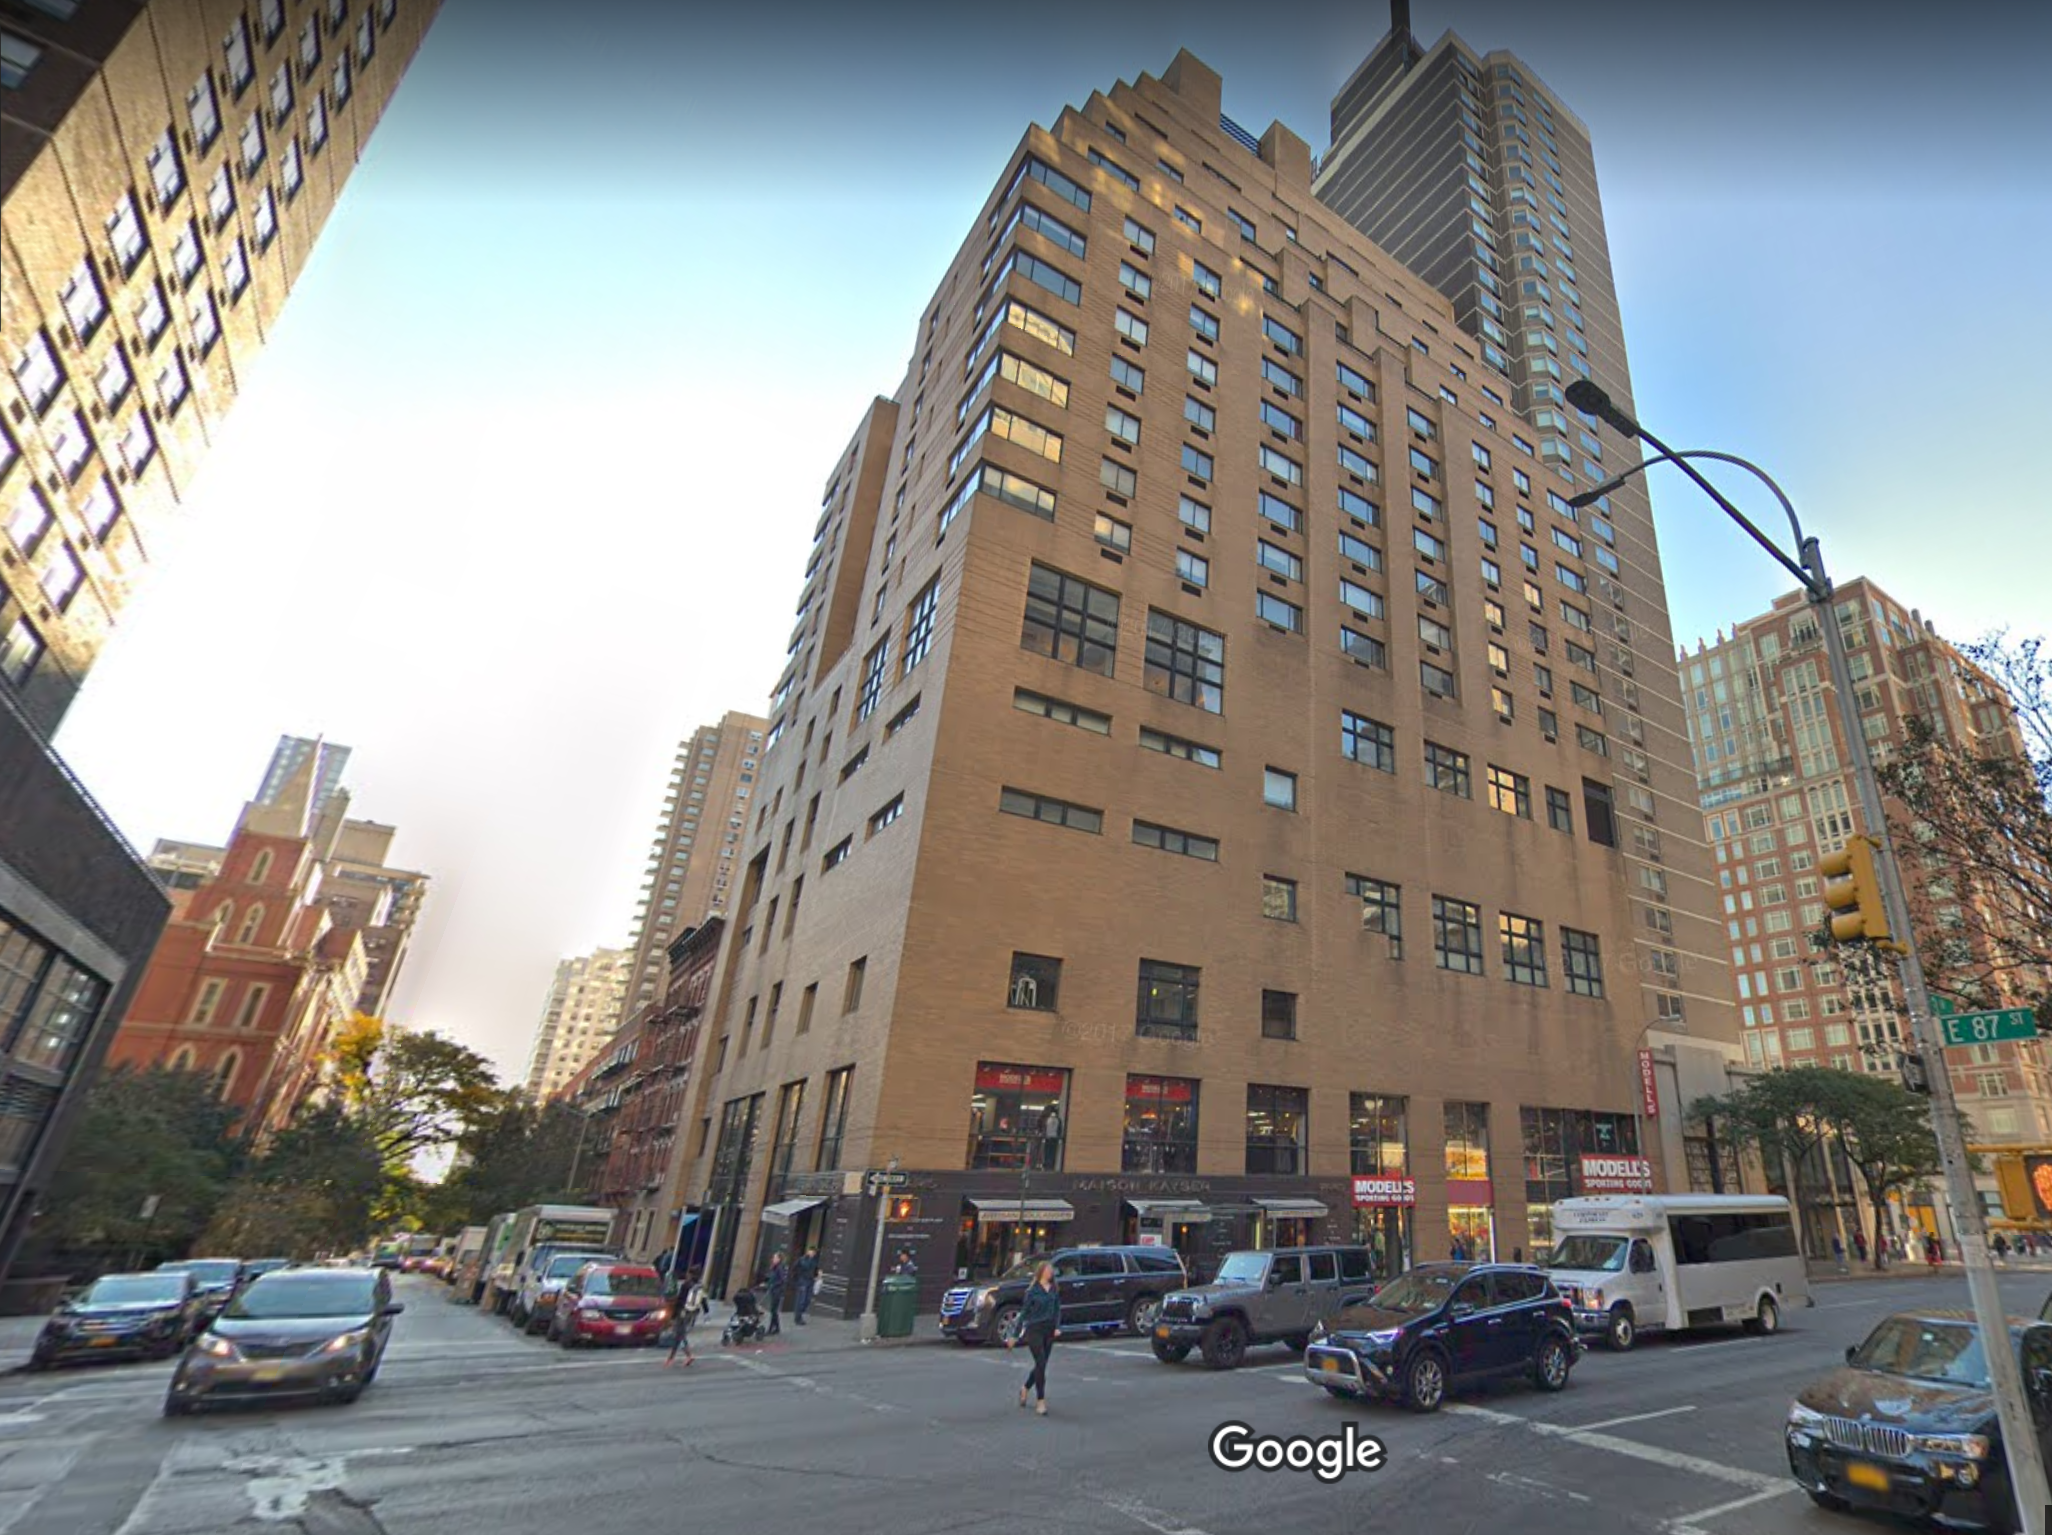 New York City man, 55, falls 12 stories, dies after attempting to repair apartment window: police